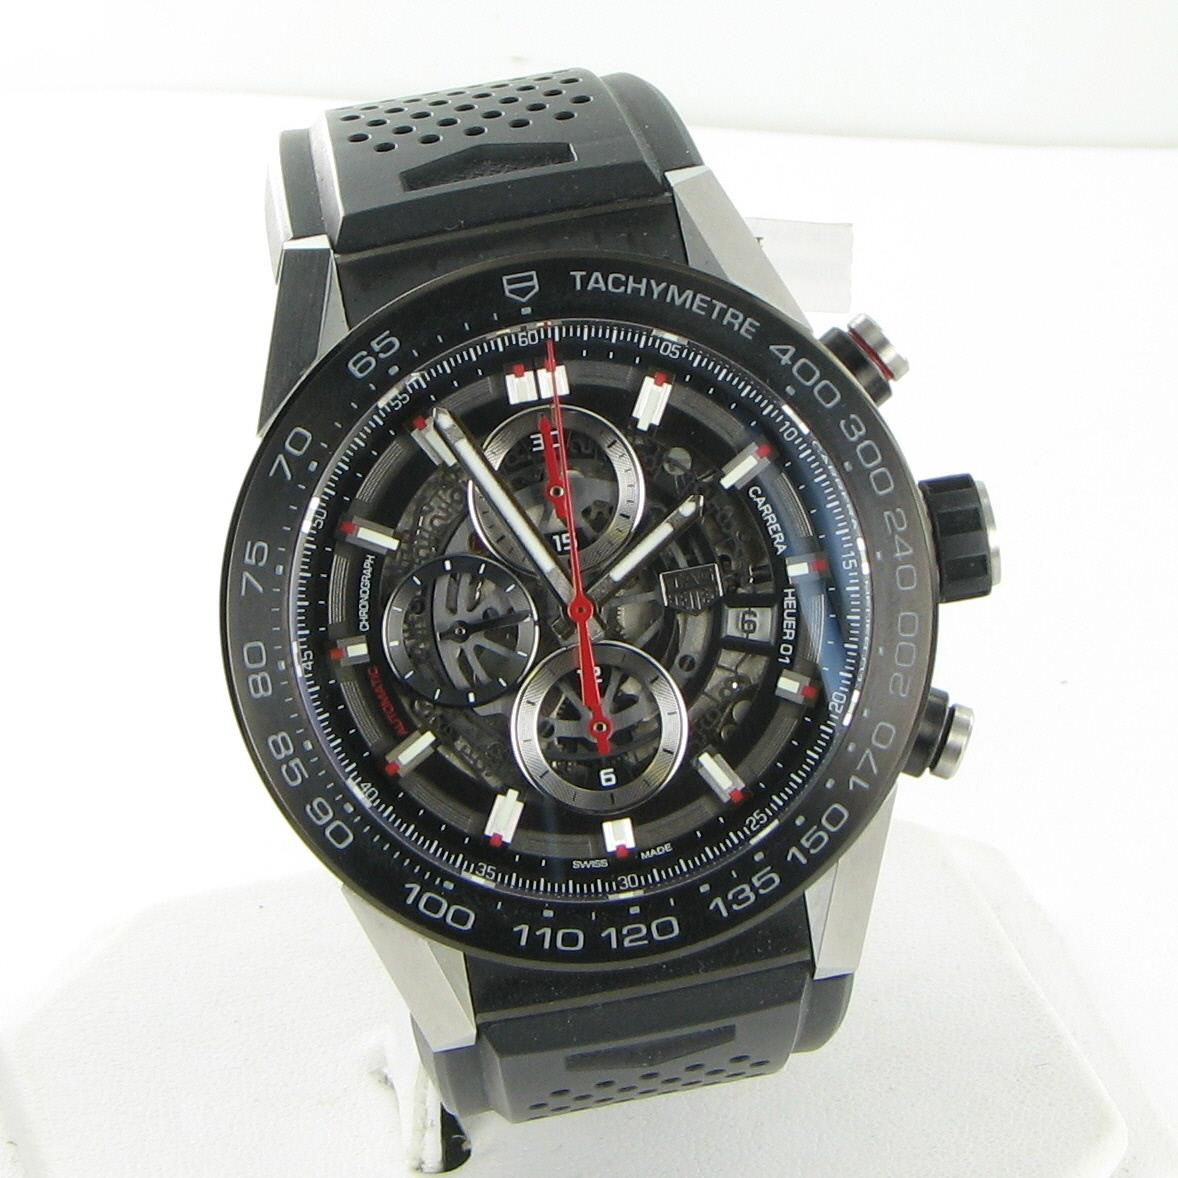 Details About New Tag Heuer Car2a1z Ft6044 Carrera Calibre 01 Automatic Skeleton 45mm Watch